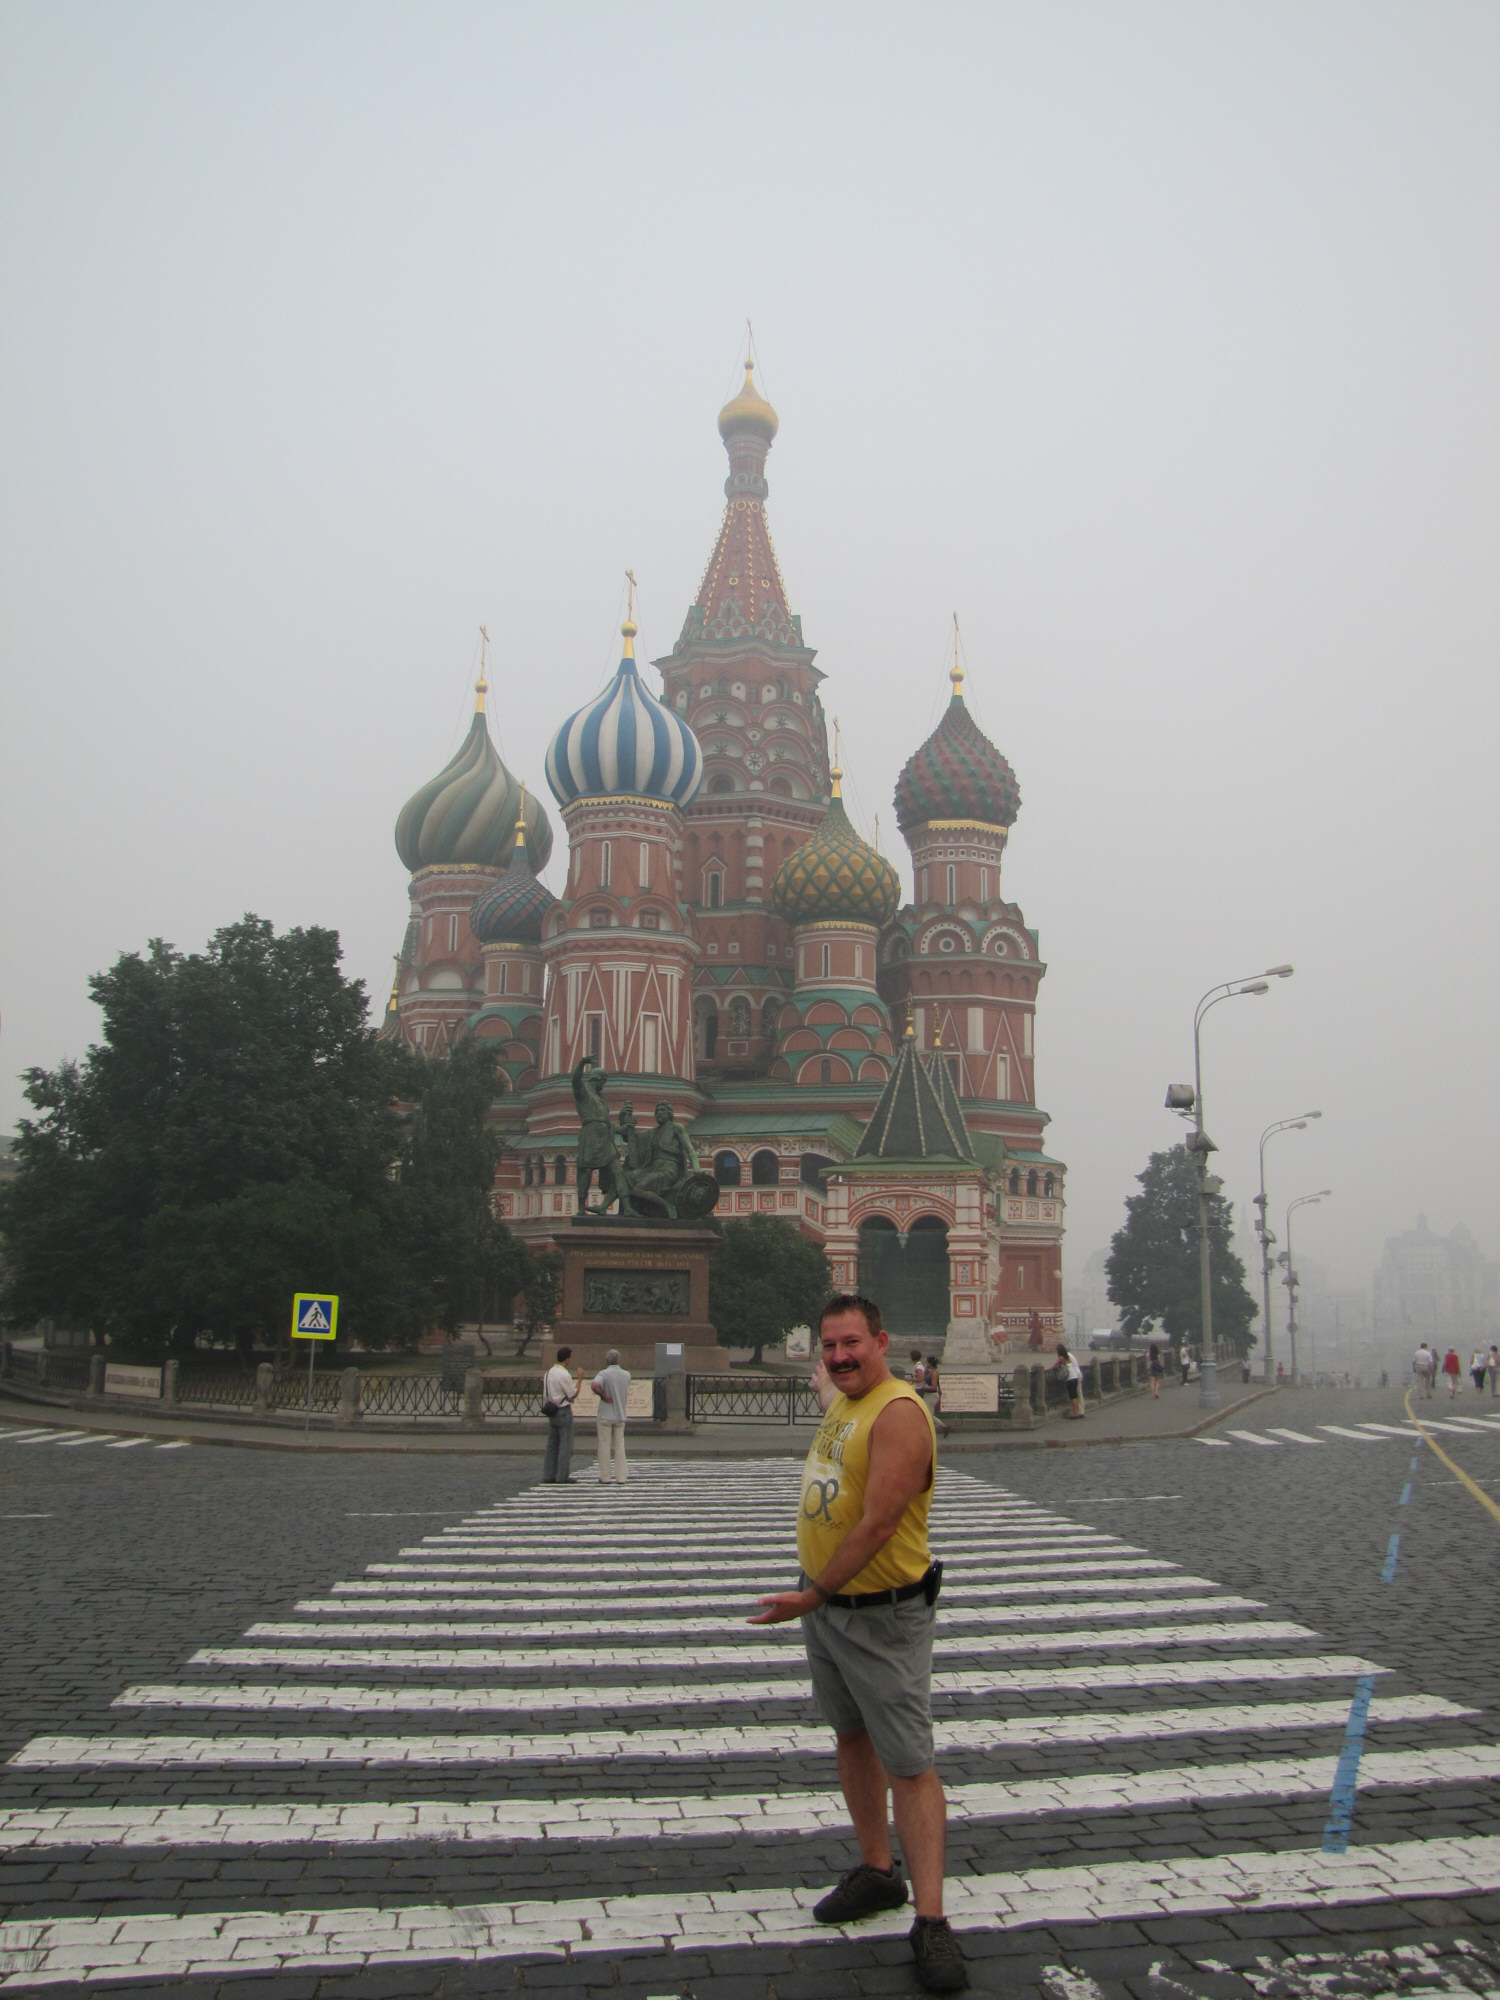 St. Basil's Cathedral on Red Square, Moscow July 2010